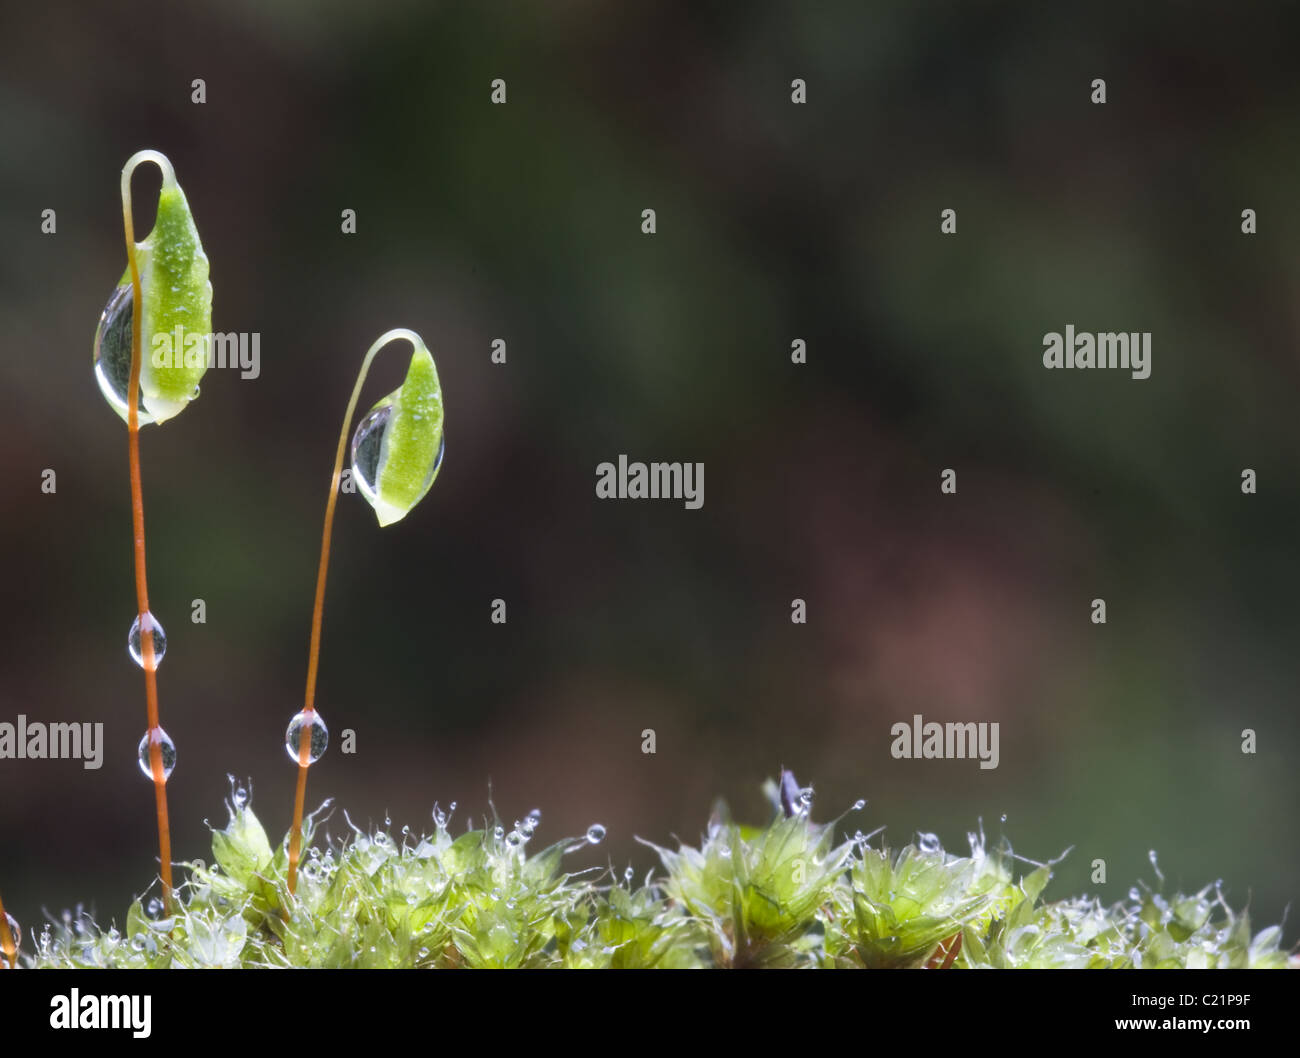 Bryum capilliare, a common cushion forming moss often found growing on walls and rocks. Shown here in early spring. - Stock Image